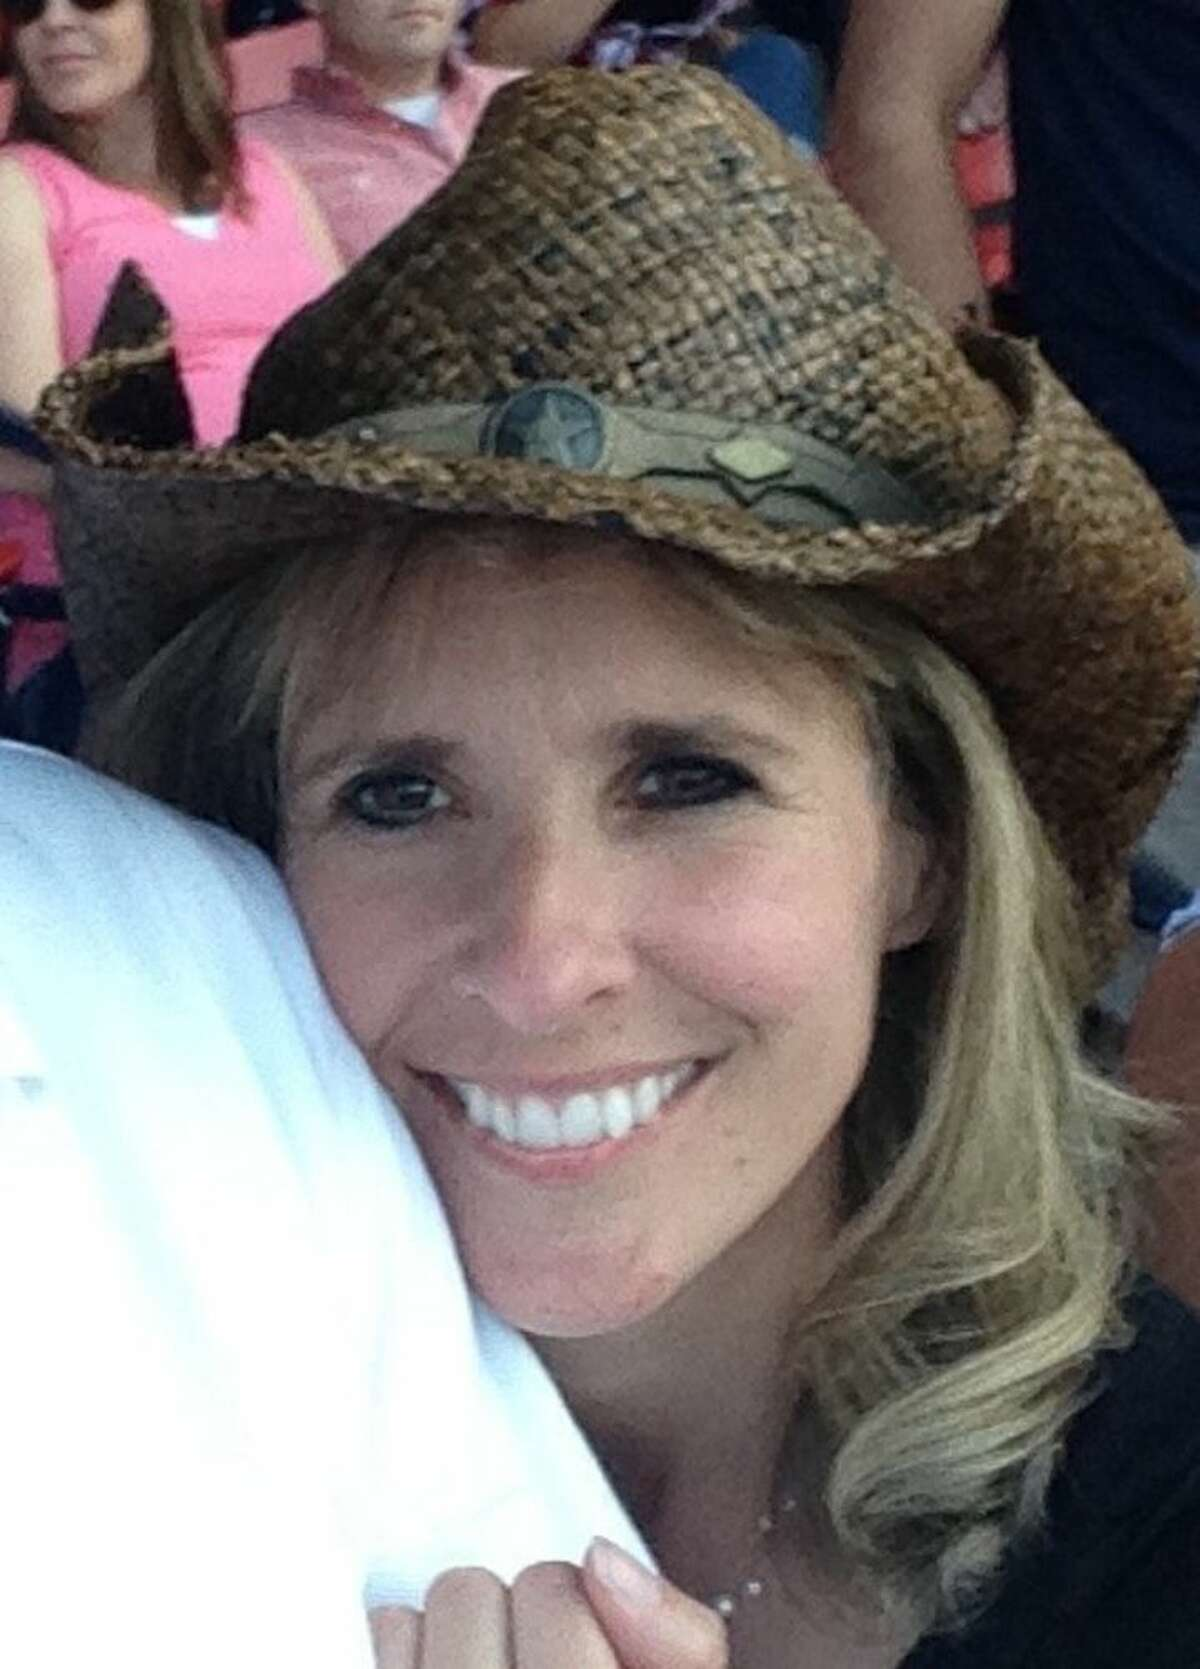 Tonya Carpenter is seen in an undated photo provided by the family of Tonya Carpenter. Carpenter, 44, of Paxton, Mass., who was hit by a broken bat at Fenway Park during a game between the Oakland Athletics and the Boston Red Sox on Friday night, remains in serious condition Sunday, June 7, 2015 at Beth Israel Deaconess Medical Center Hospital in Boston. Carpenter was struck in the head by Oakland player Brett Lawrie's bat as she sat near the field between home plate and the third base dugout.